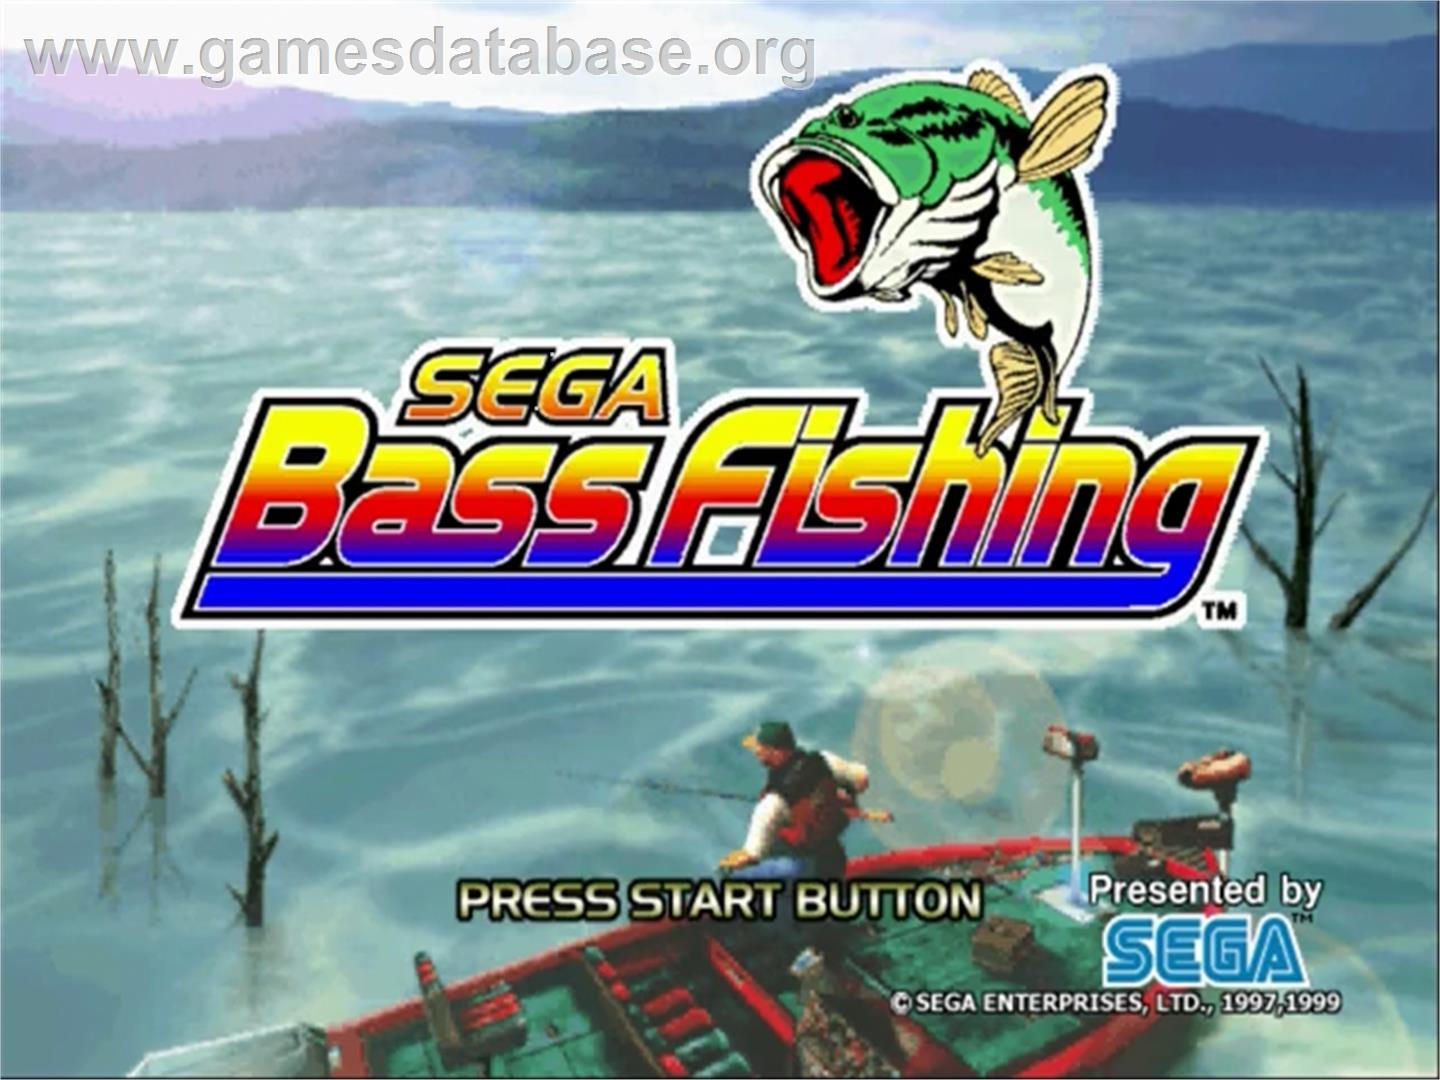 Sega bass fishing sega dreamcast games database for Nd game and fish stocking report